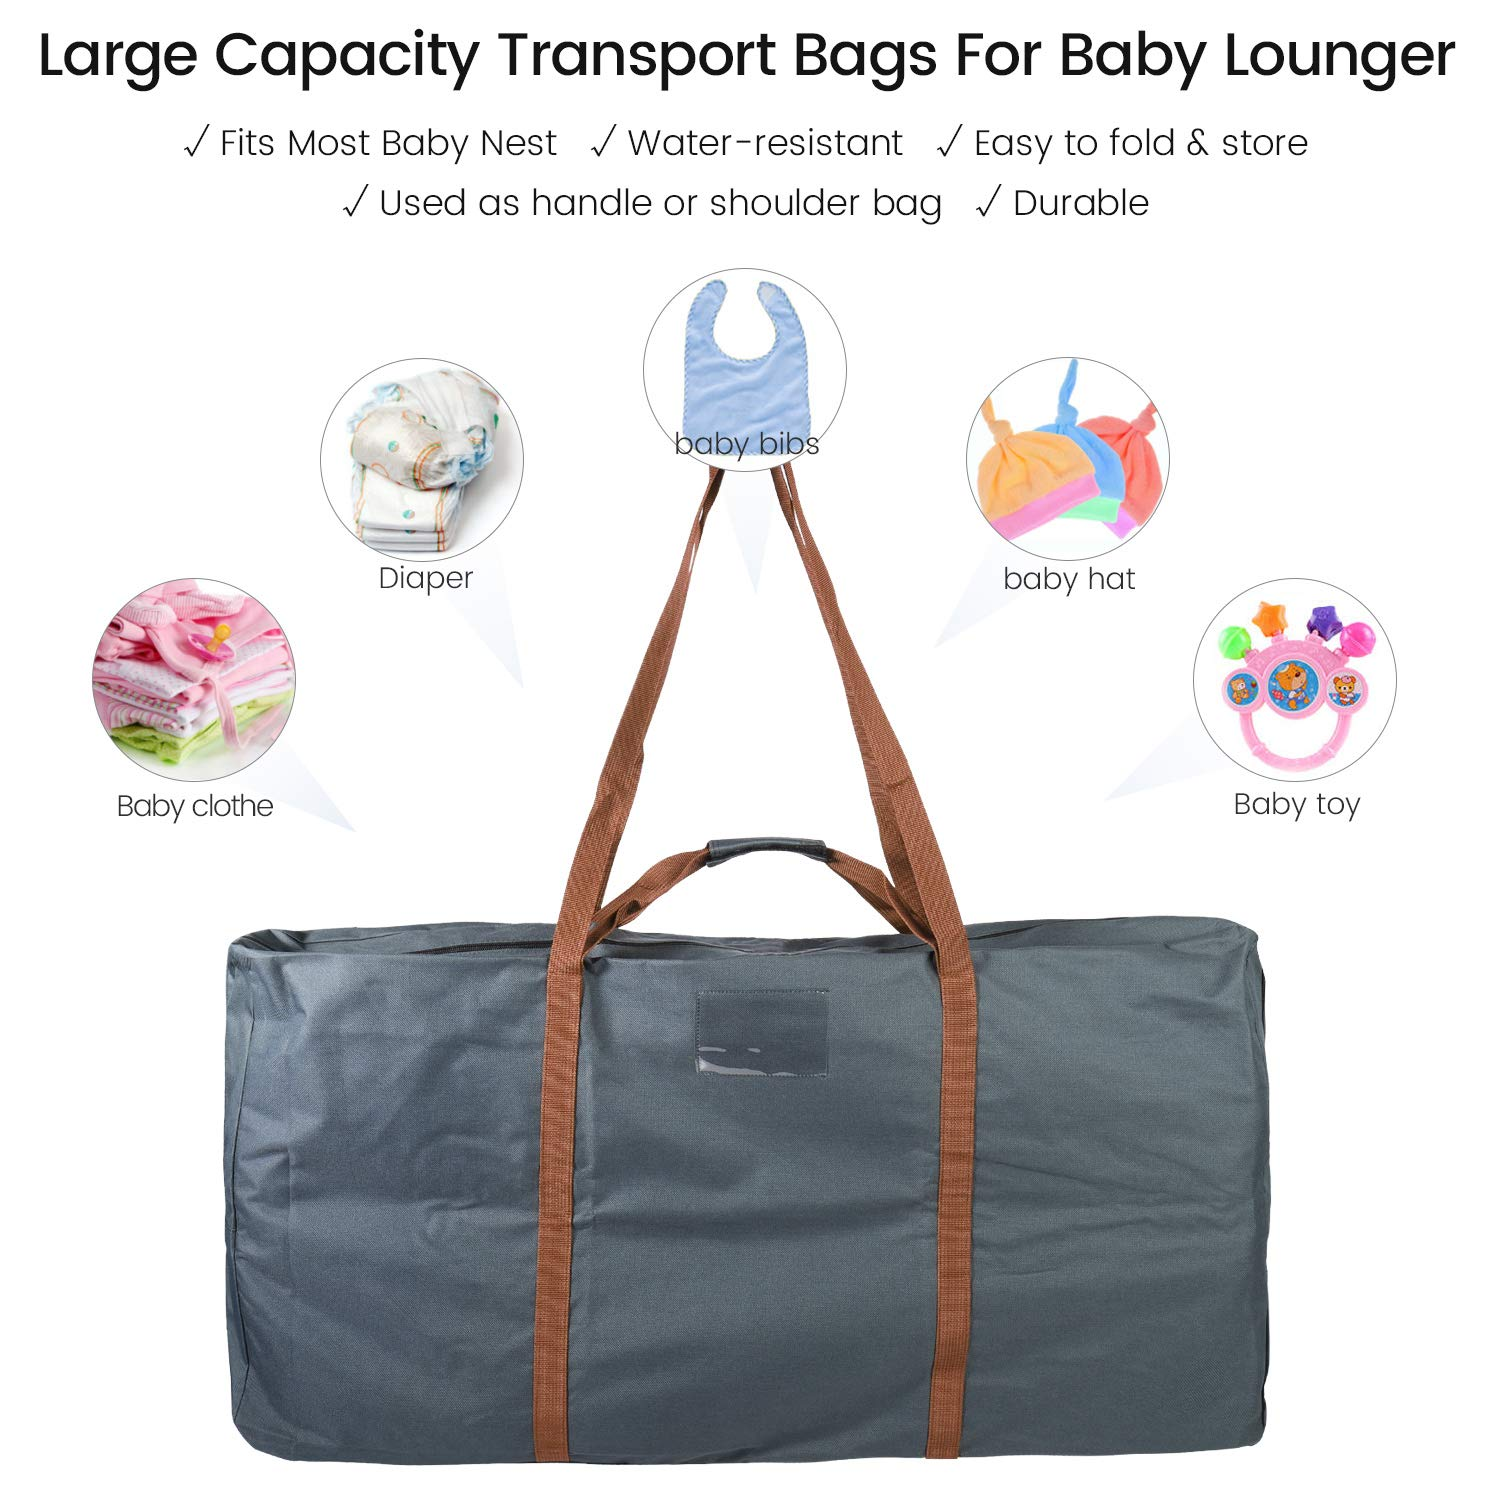 Large Capacity Portable Storage Bag for Newborn Lounge,31.5x 20 Water-Resistant Transport Bags for Baby Lounger Grey